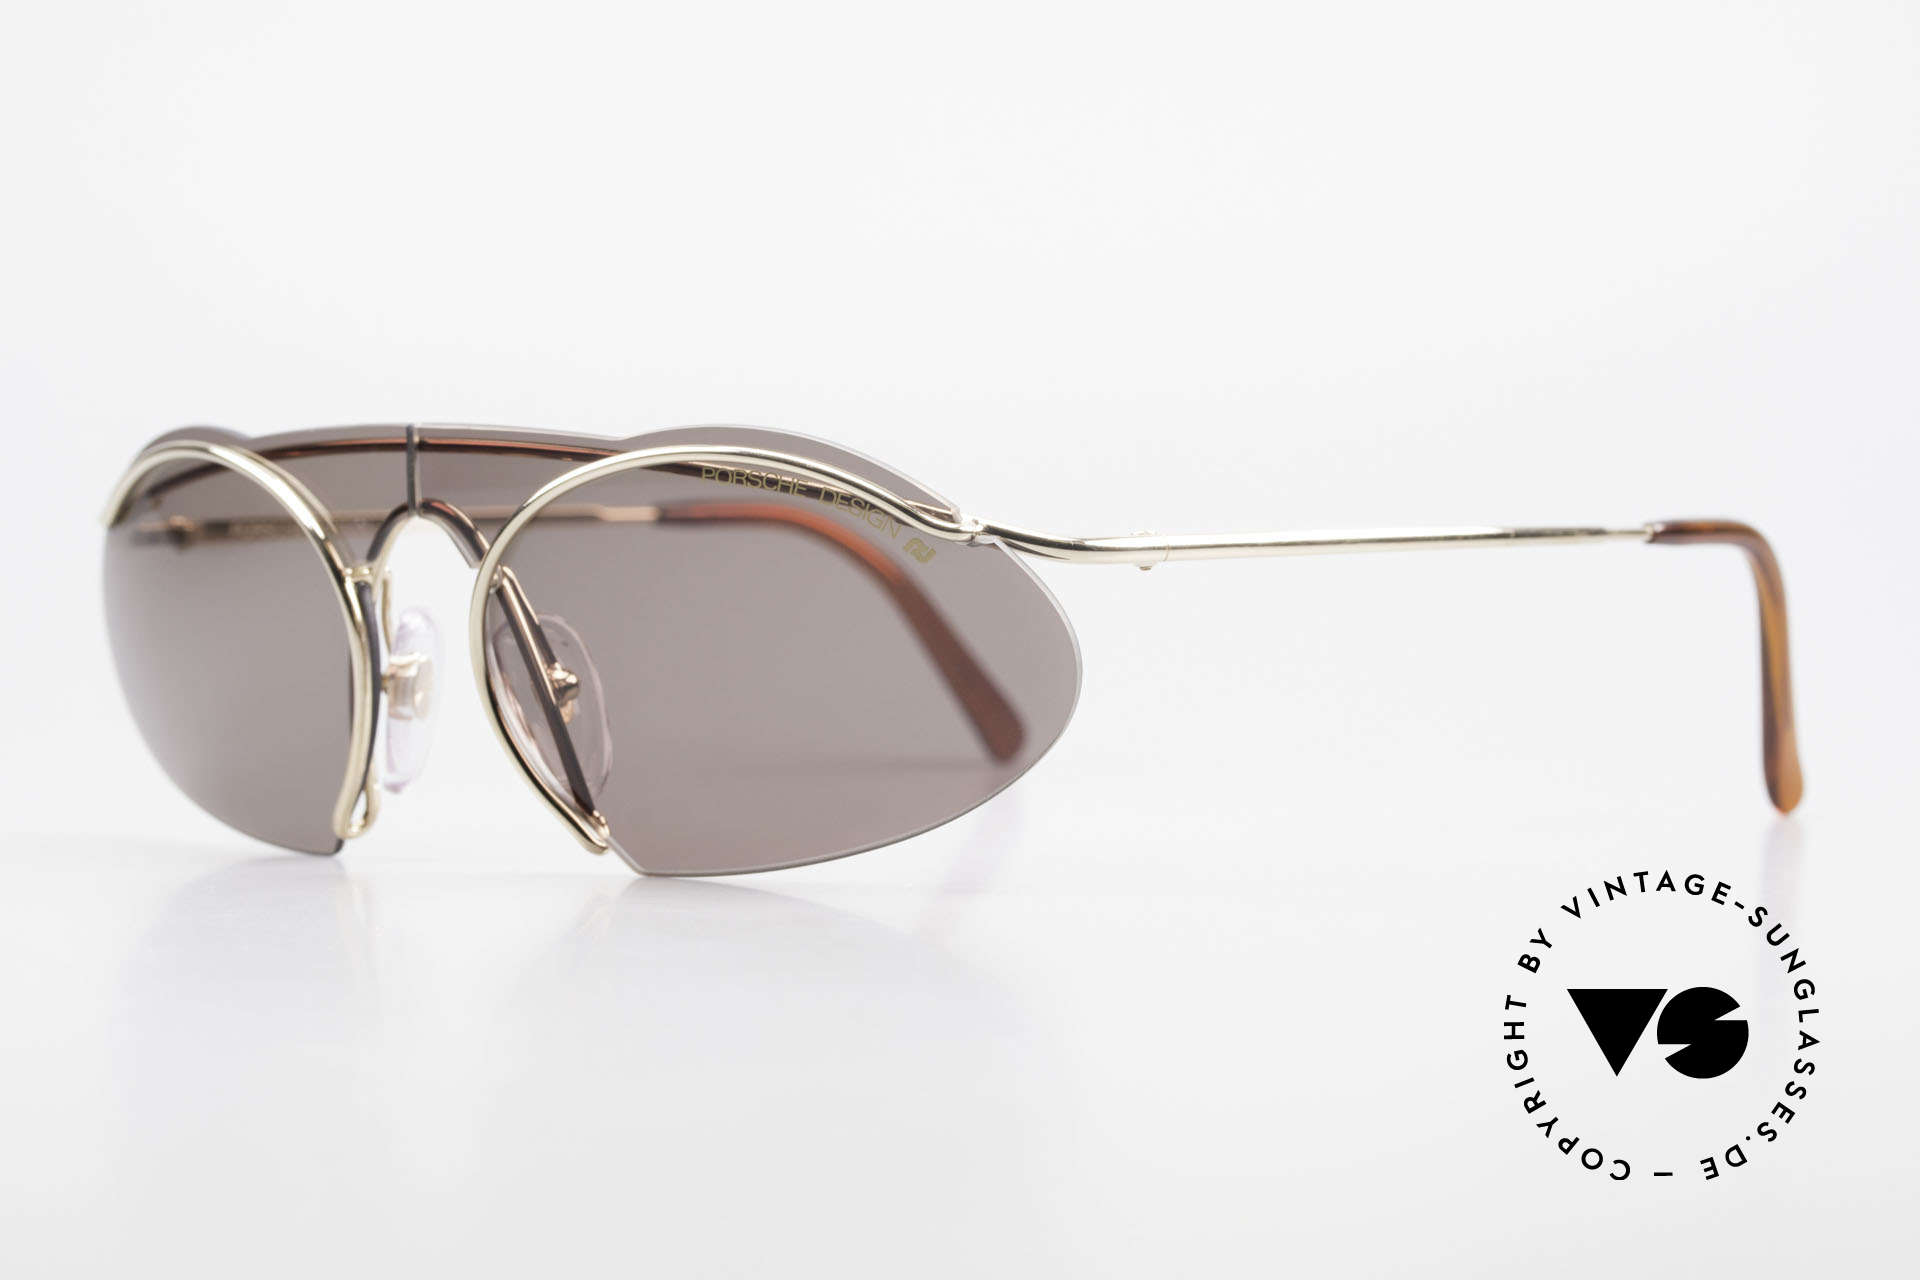 Porsche 5690 2 in 1 Sunglasses Two Styles, 2 completely different styles due to changeable lenses, Made for Men and Women